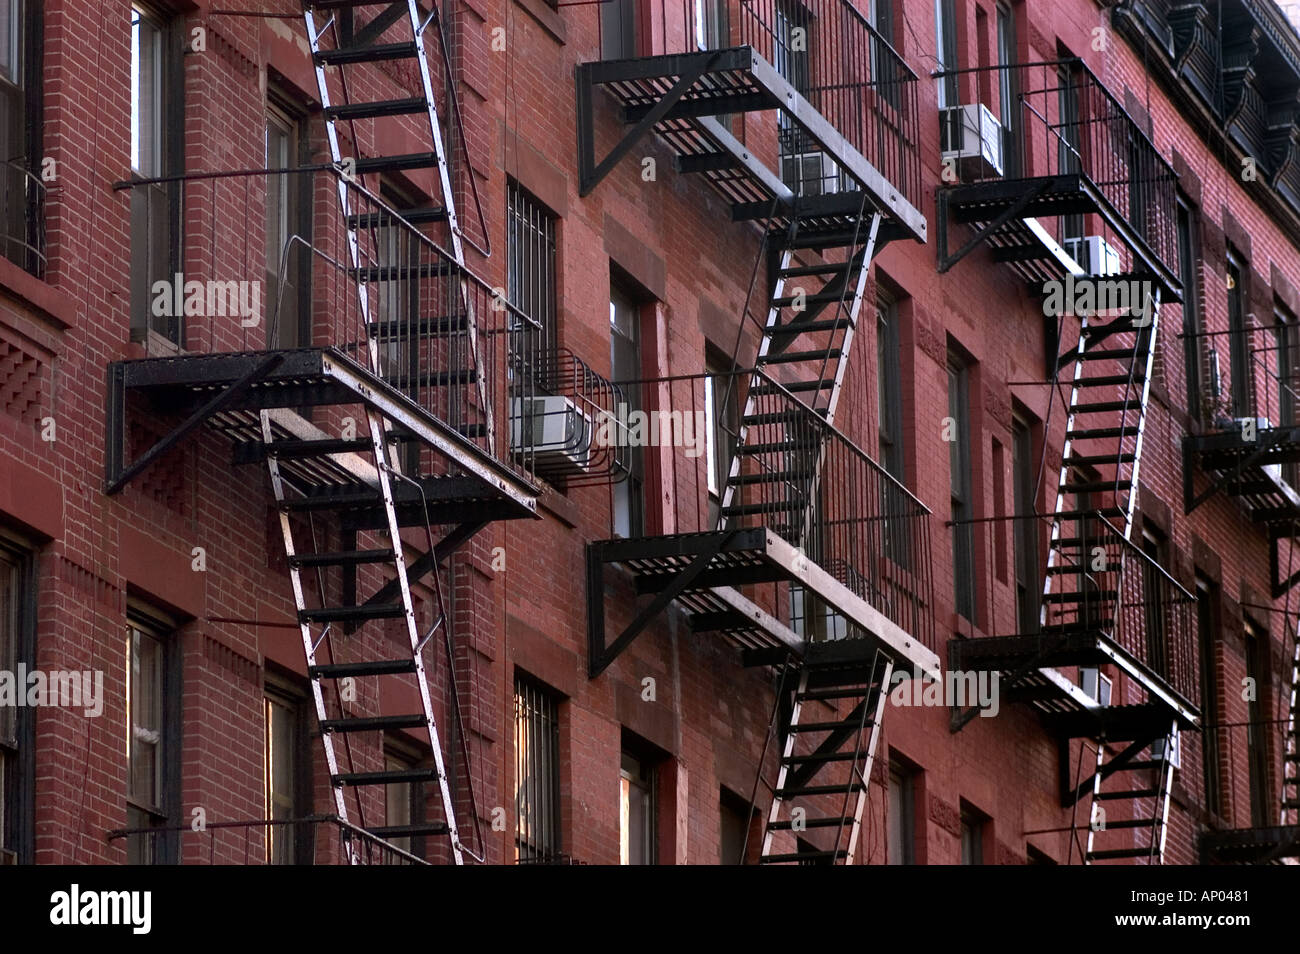 RED BRICK BUILDING And BLACK METAL FIRE FIRE ESCAPE STAIRS N MANHATTAN NEW  YORK CITY NEW